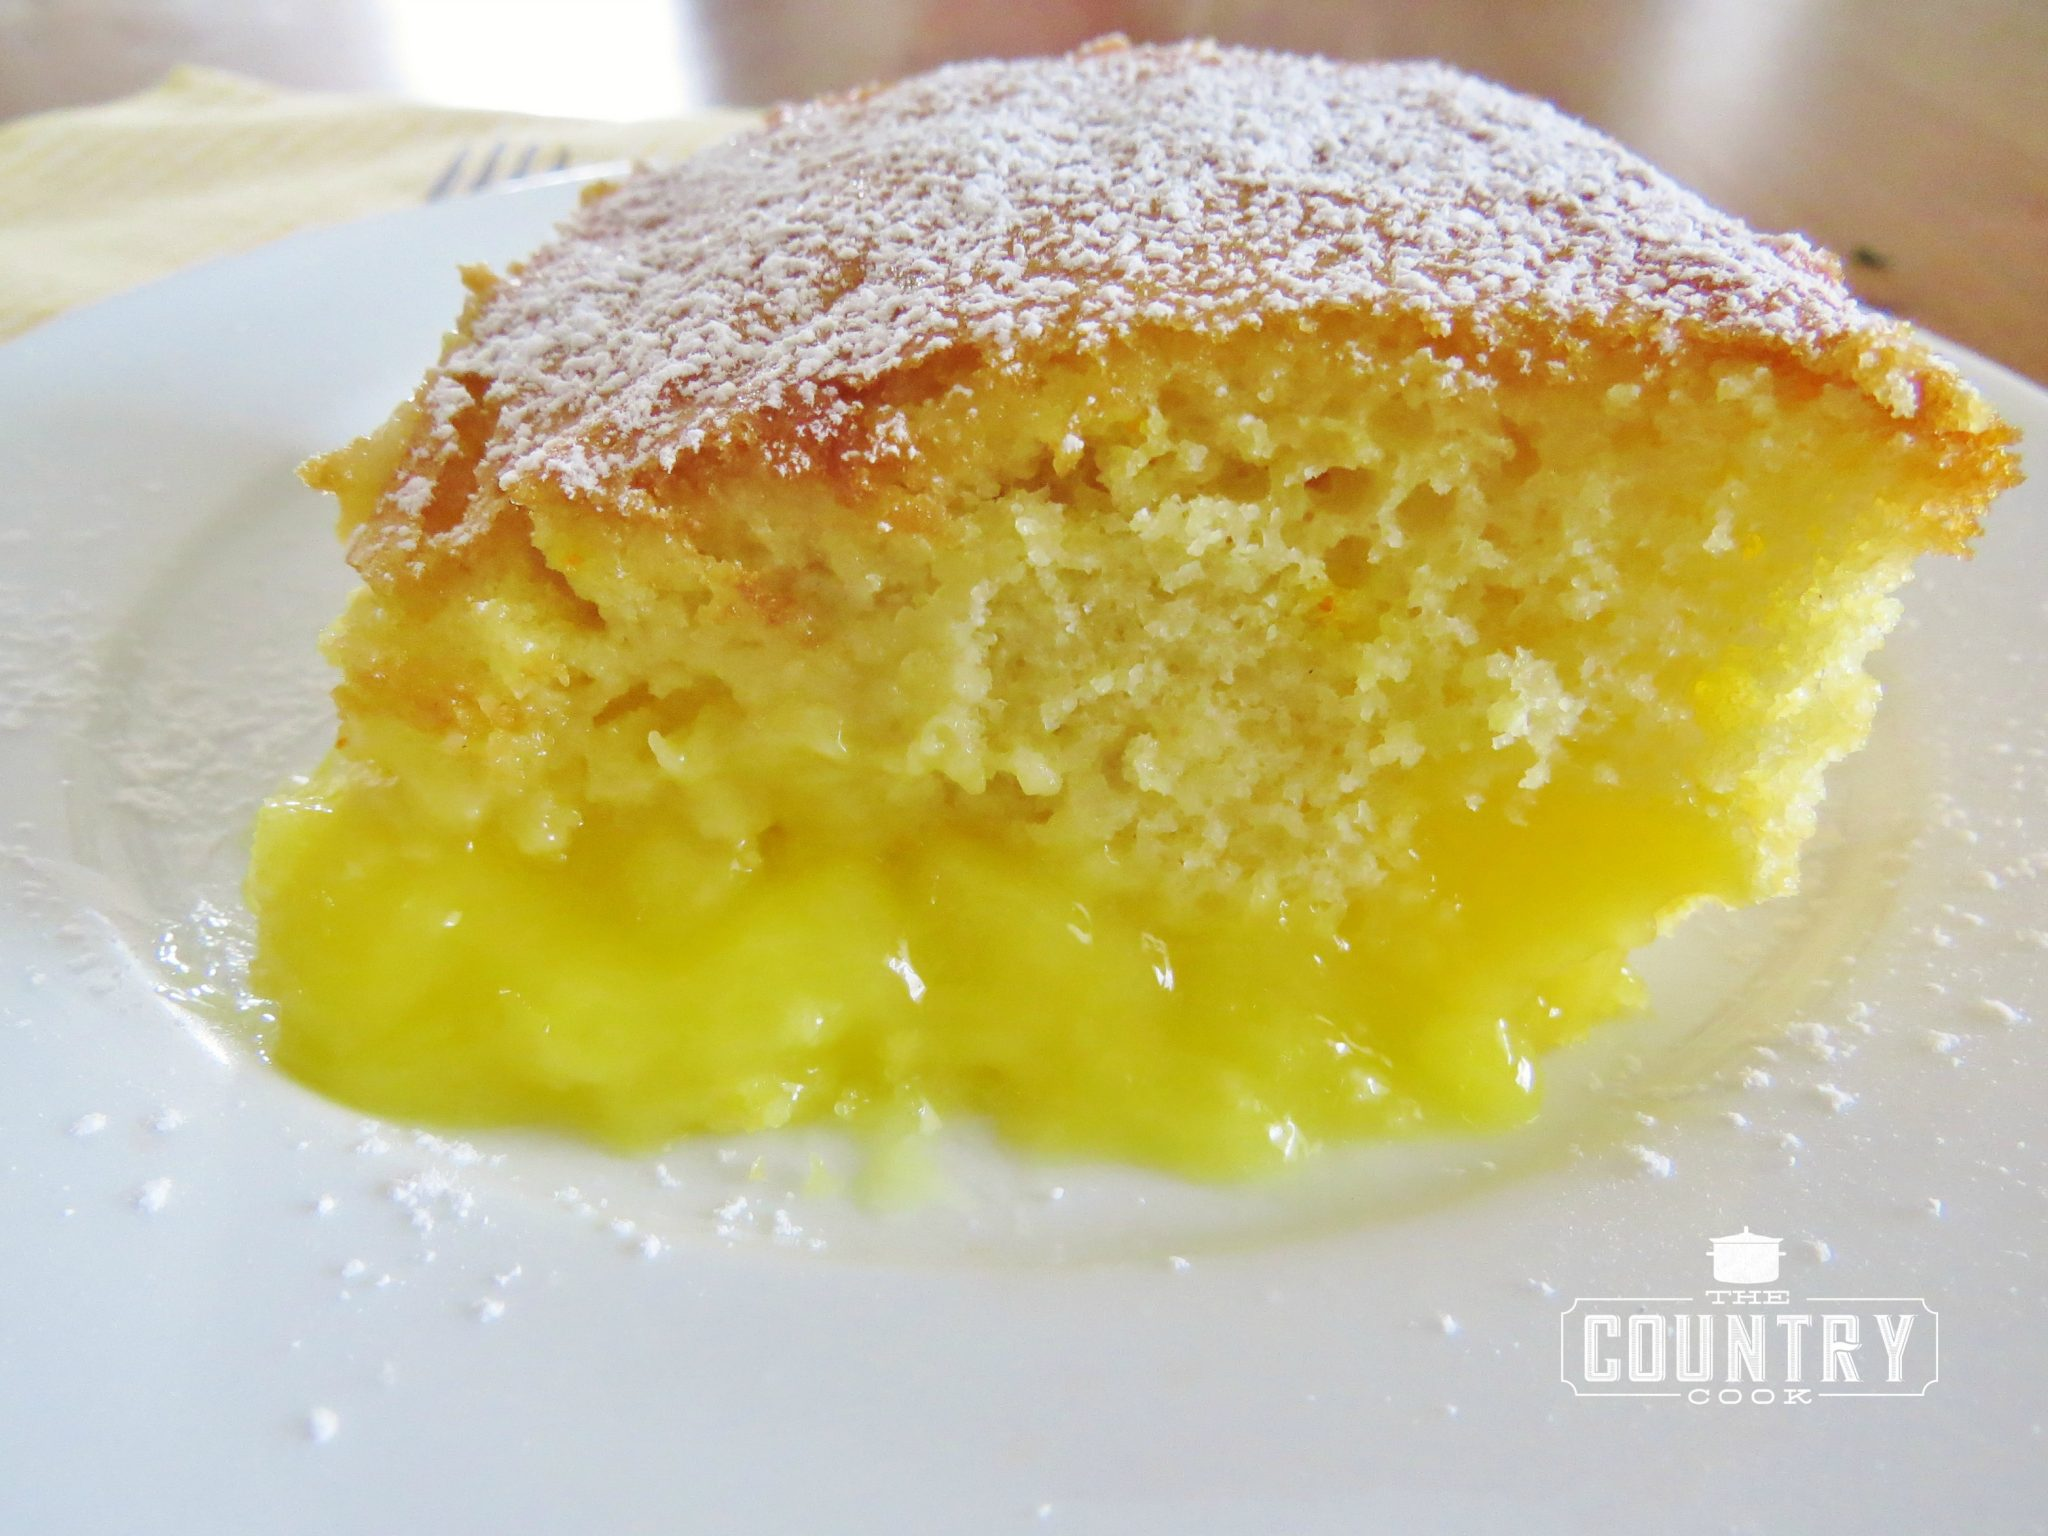 Warm Lemon Pudding Cake Lemon Lava Cake The Country Cook